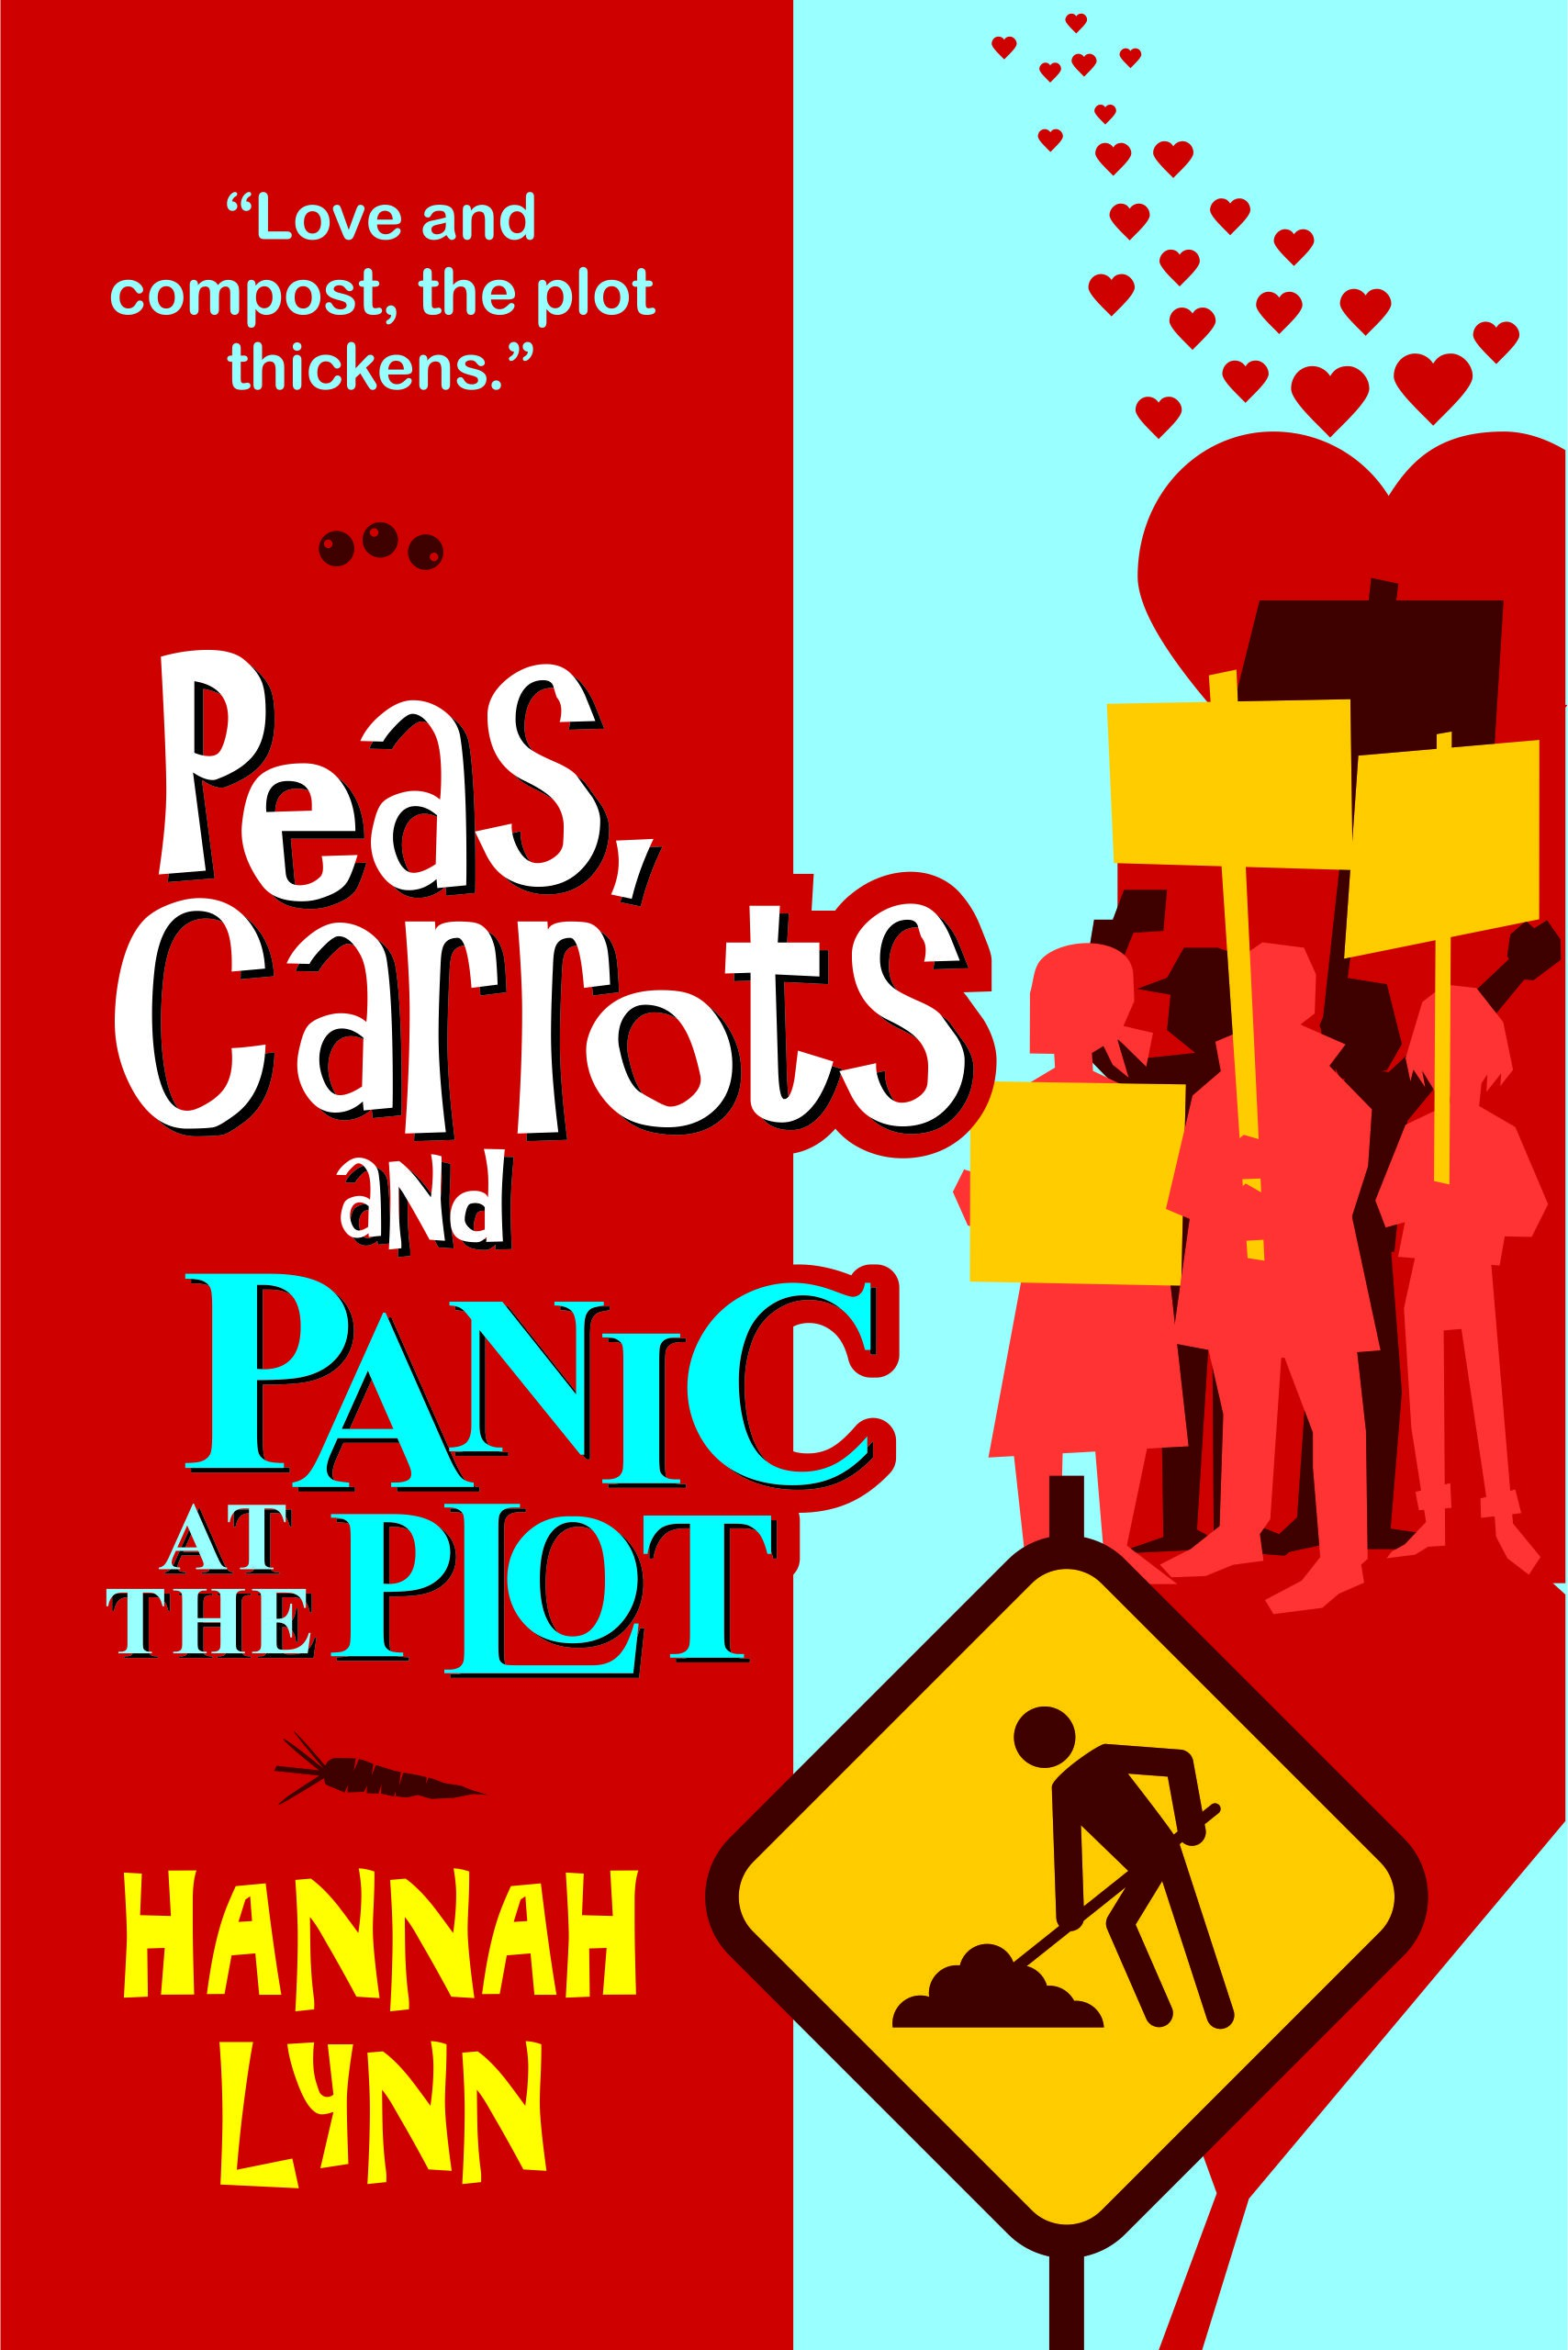 Peas, Carrots and Panic at the Plot